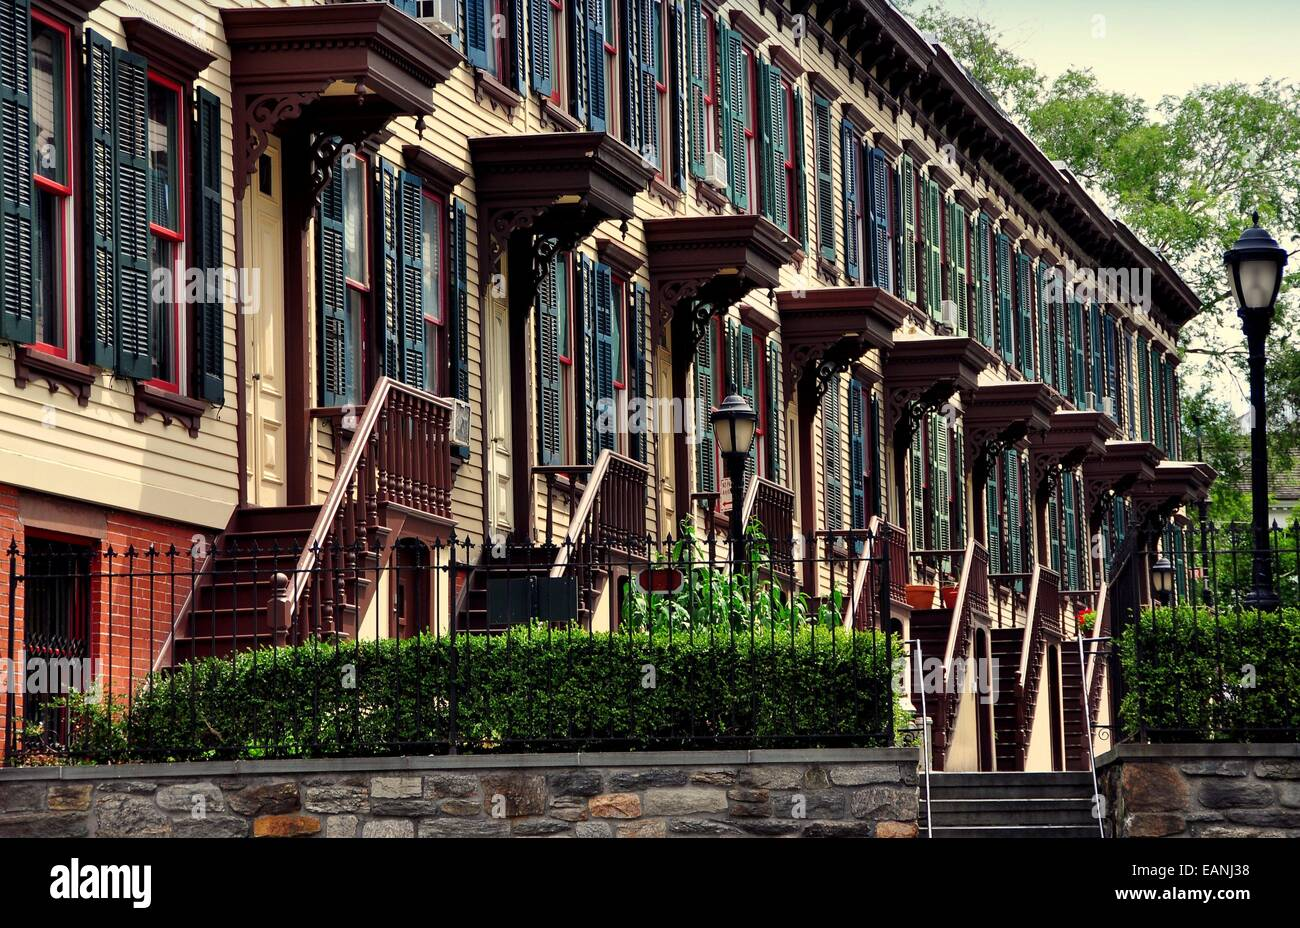 NYC 1882 Two Story Wooden Row Houses With Stairway Stoops